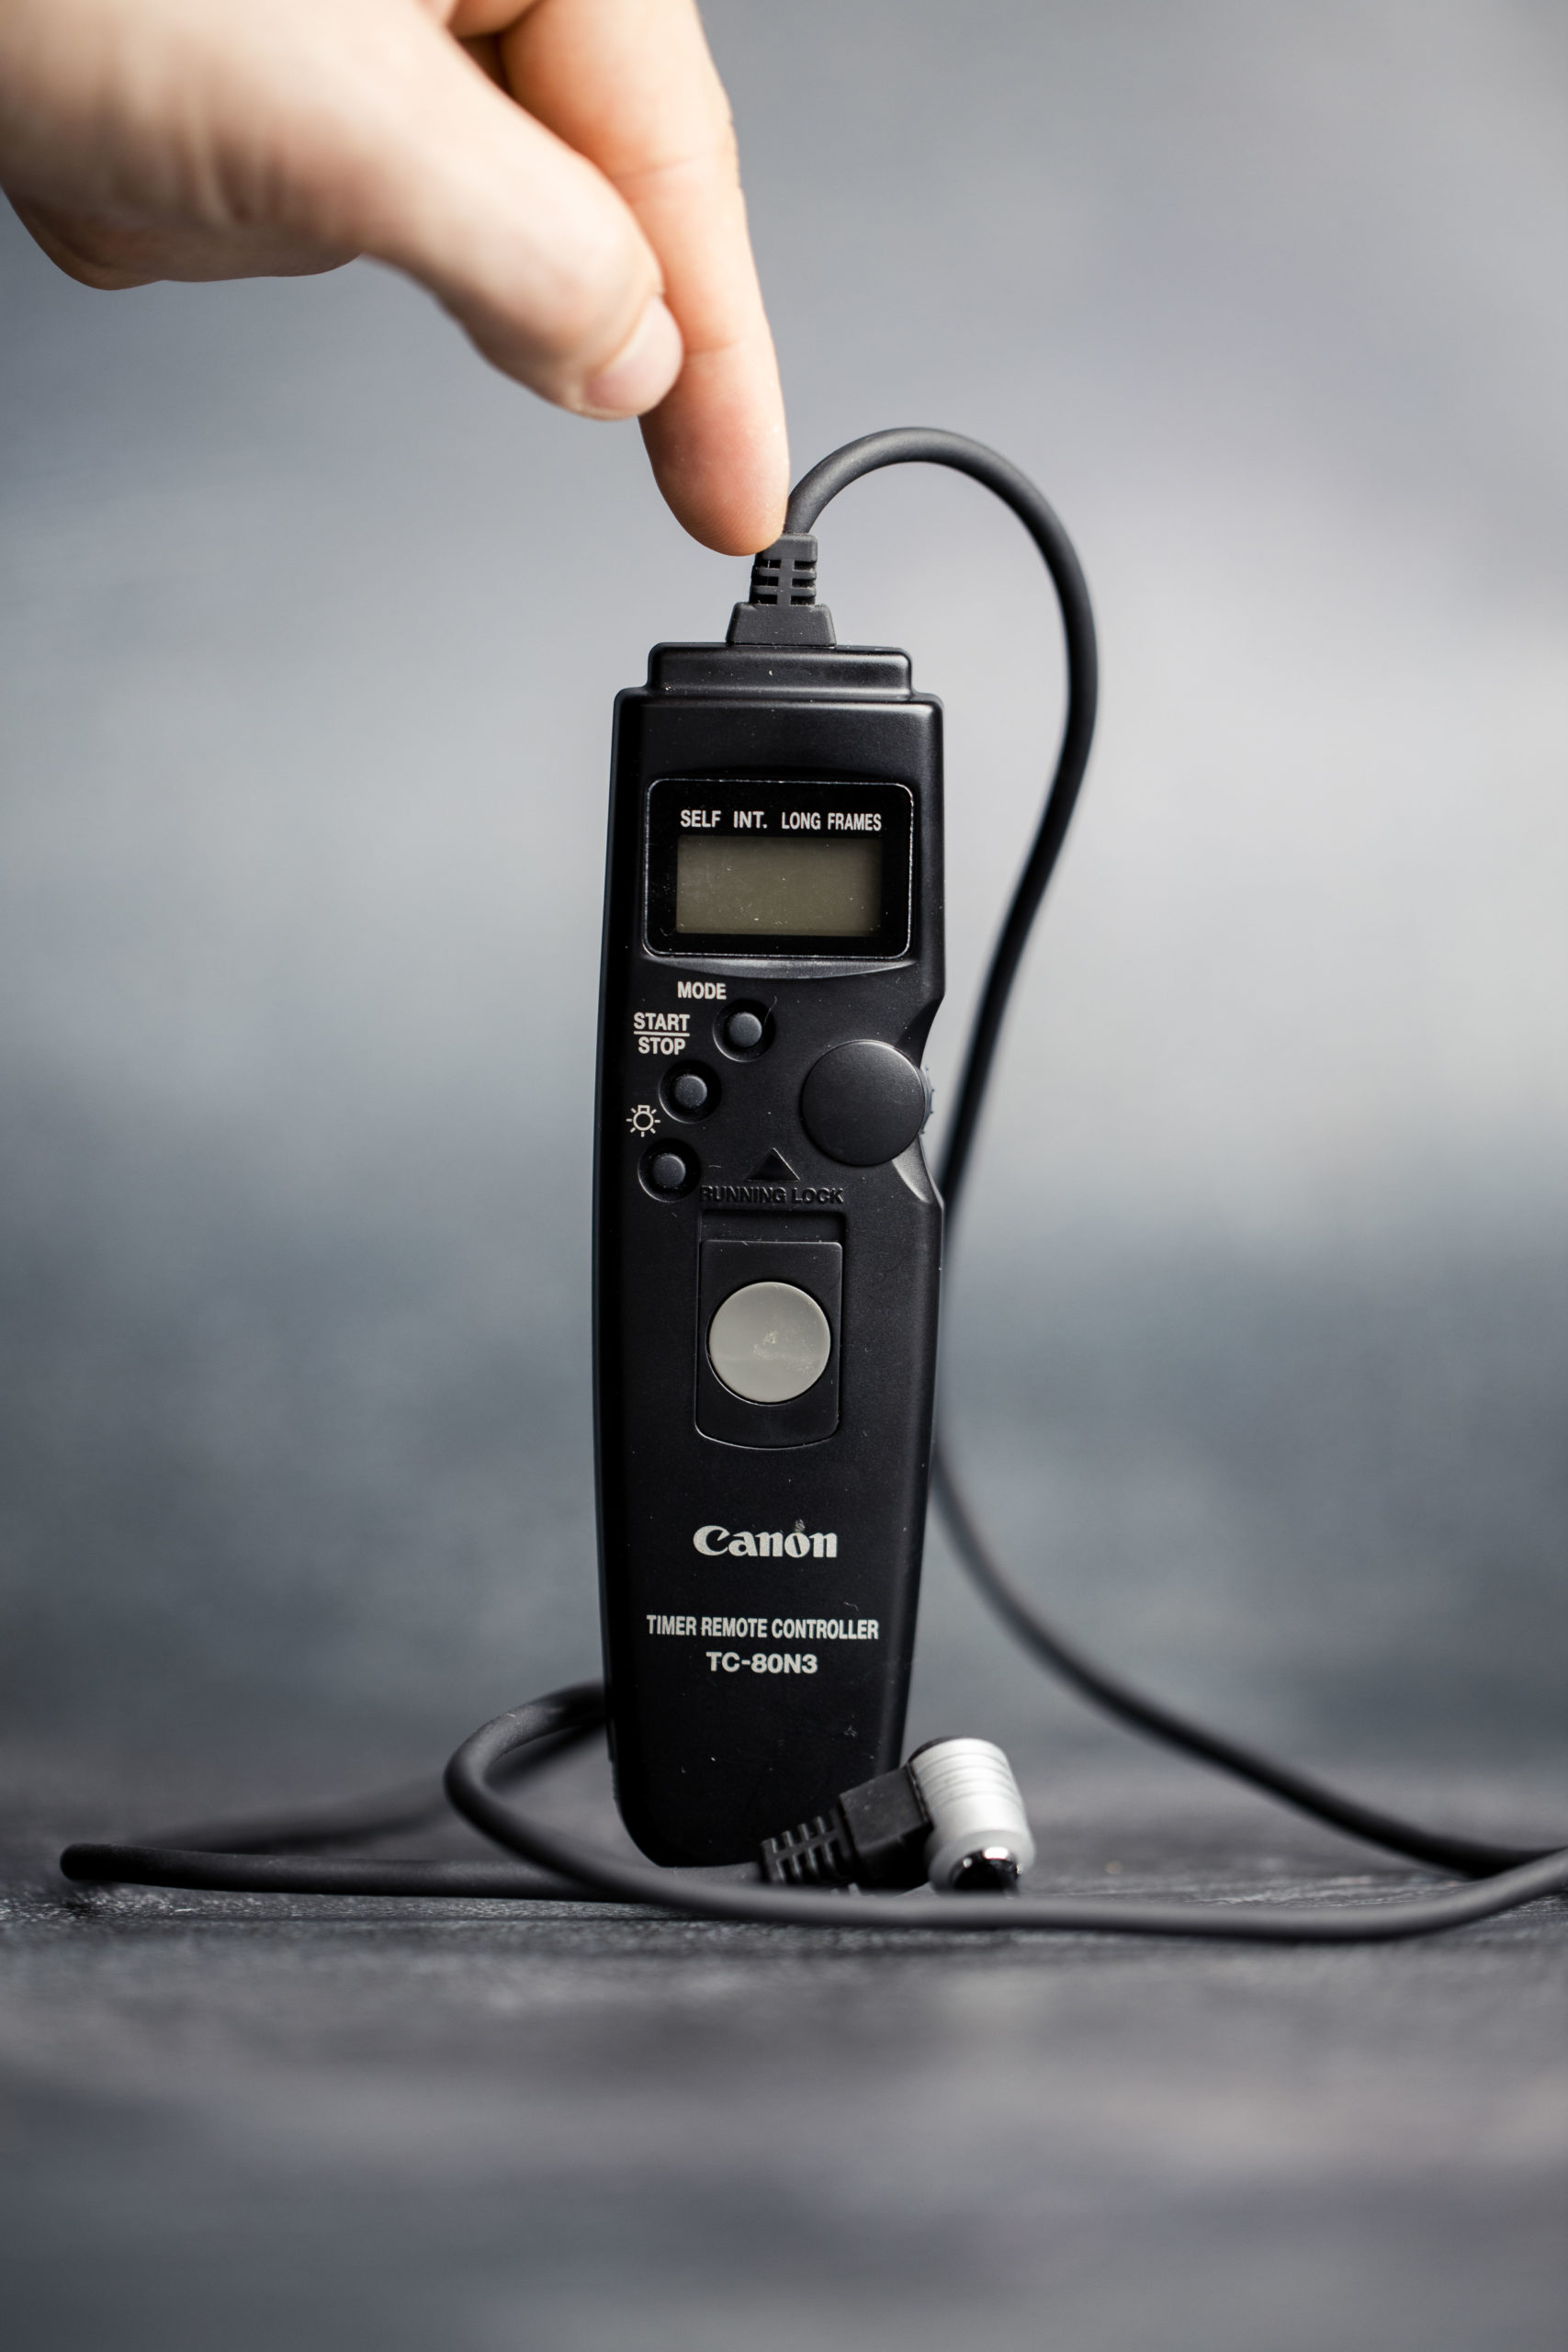 Canon time-lapse controller How to make Stop-motion tacos video? Krystian Krzewinski